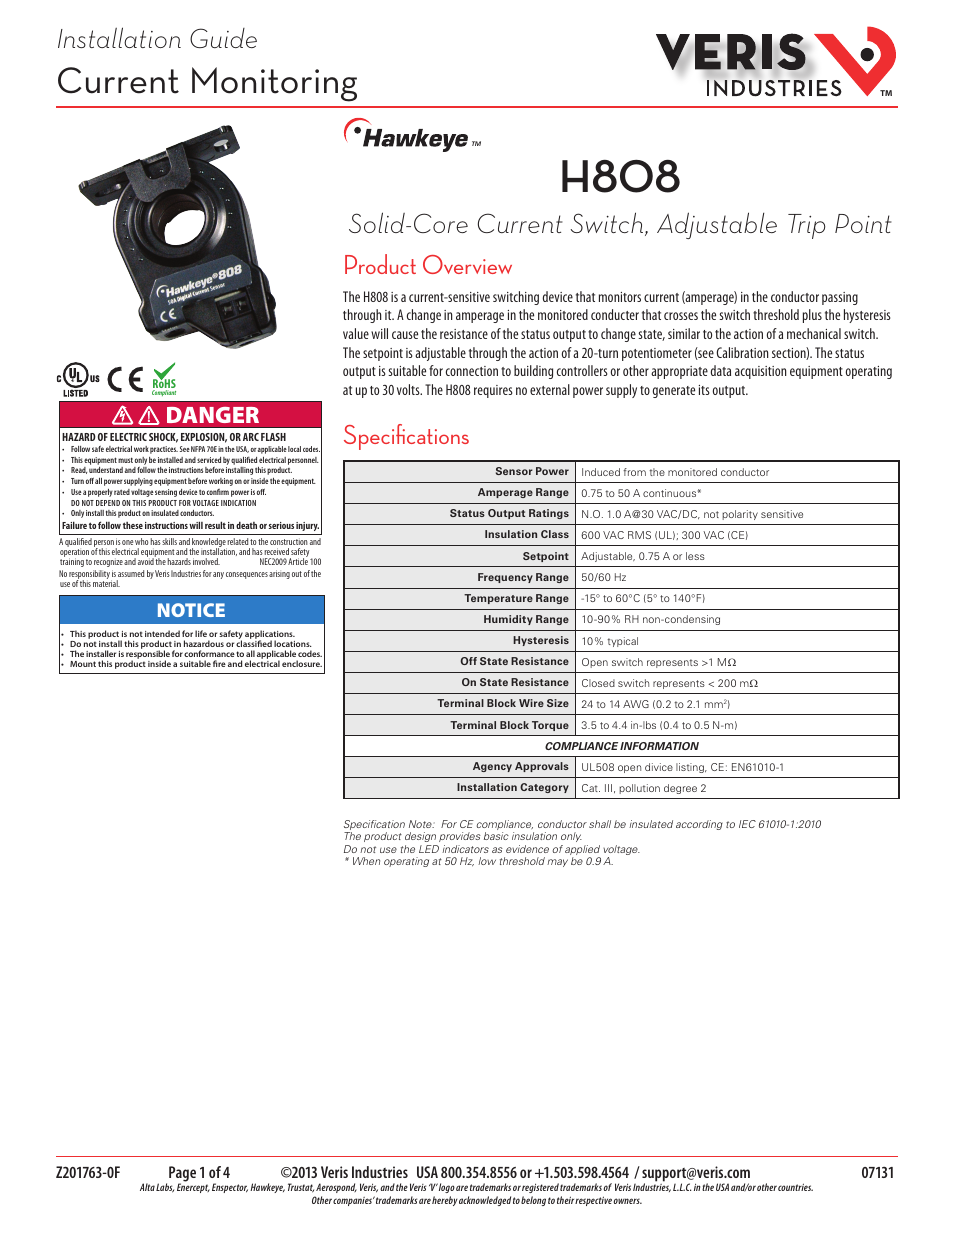 Veris industries h808 install user manual 4 pages publicscrutiny Choice Image